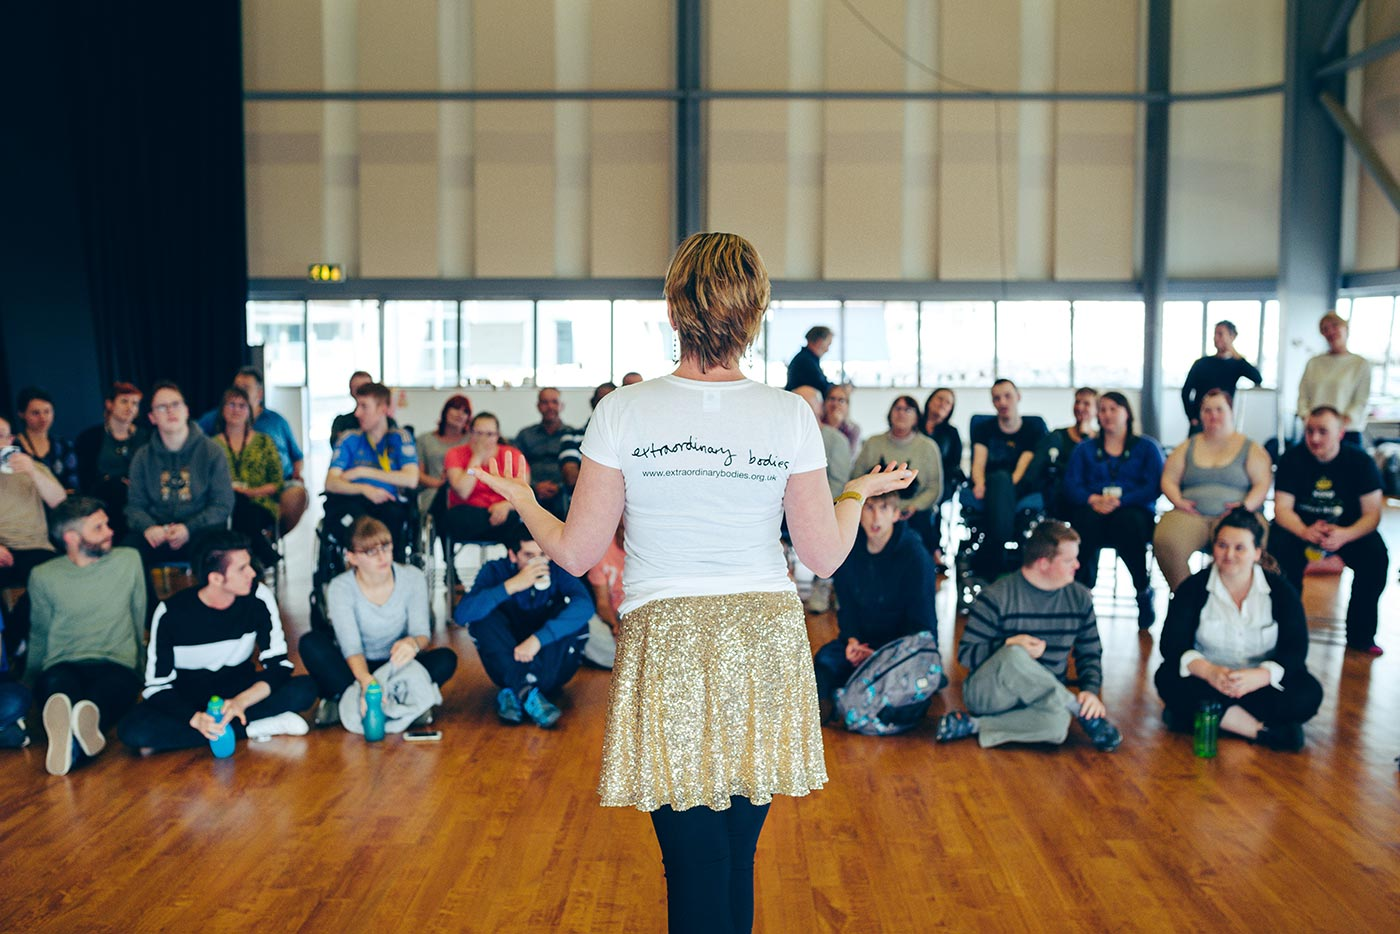 Claire Hodgson wearing a sparkly skirt with hands raised, in front of a large group looking up at her.